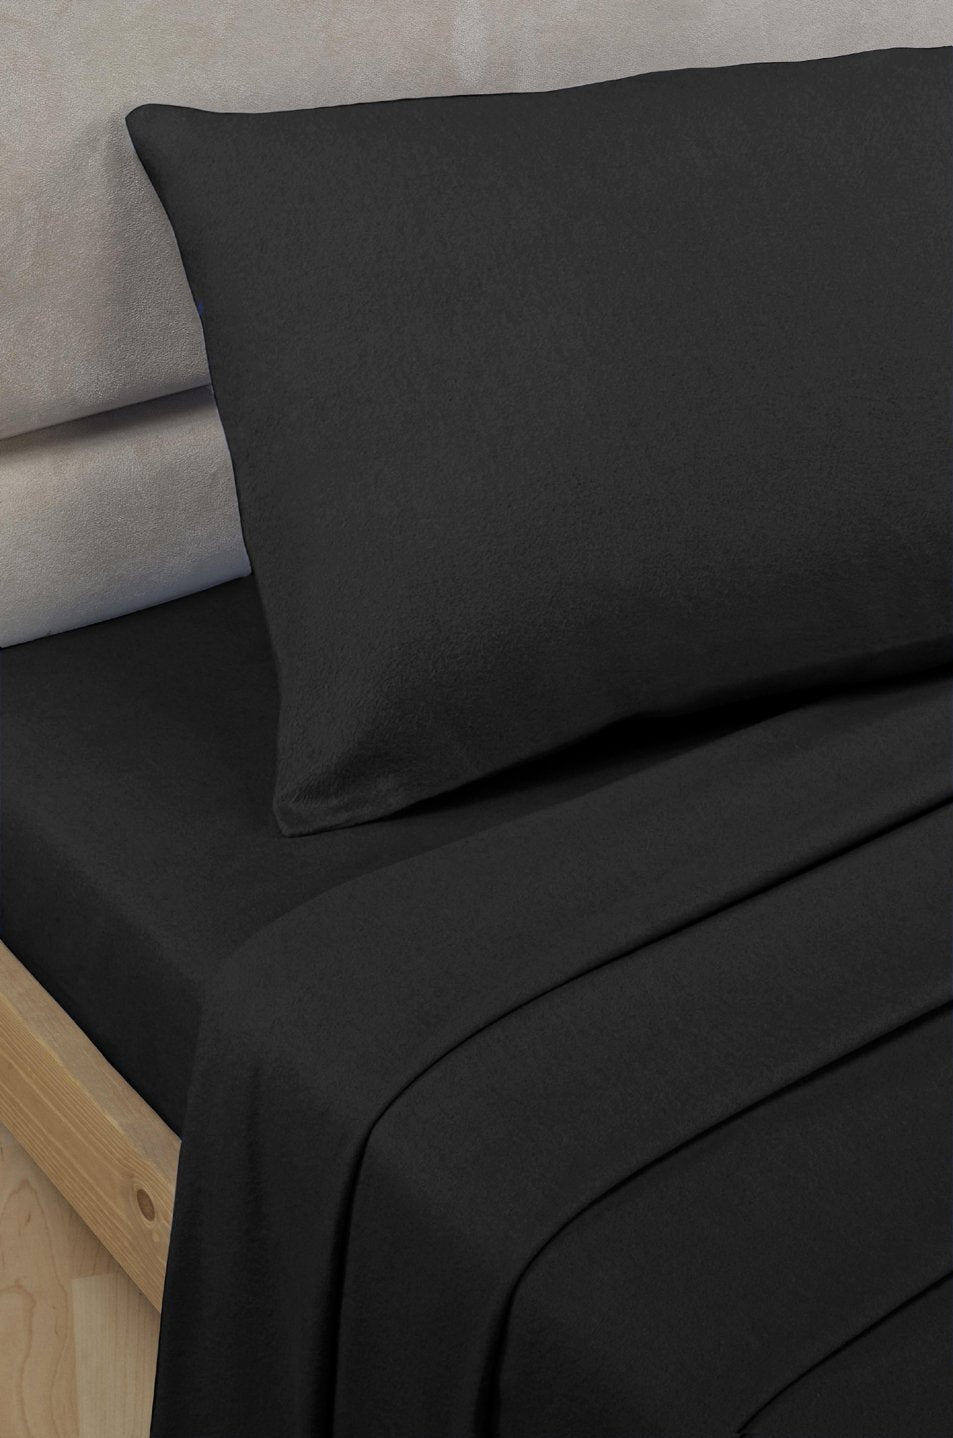 Black Percale Polycotton 2' 6